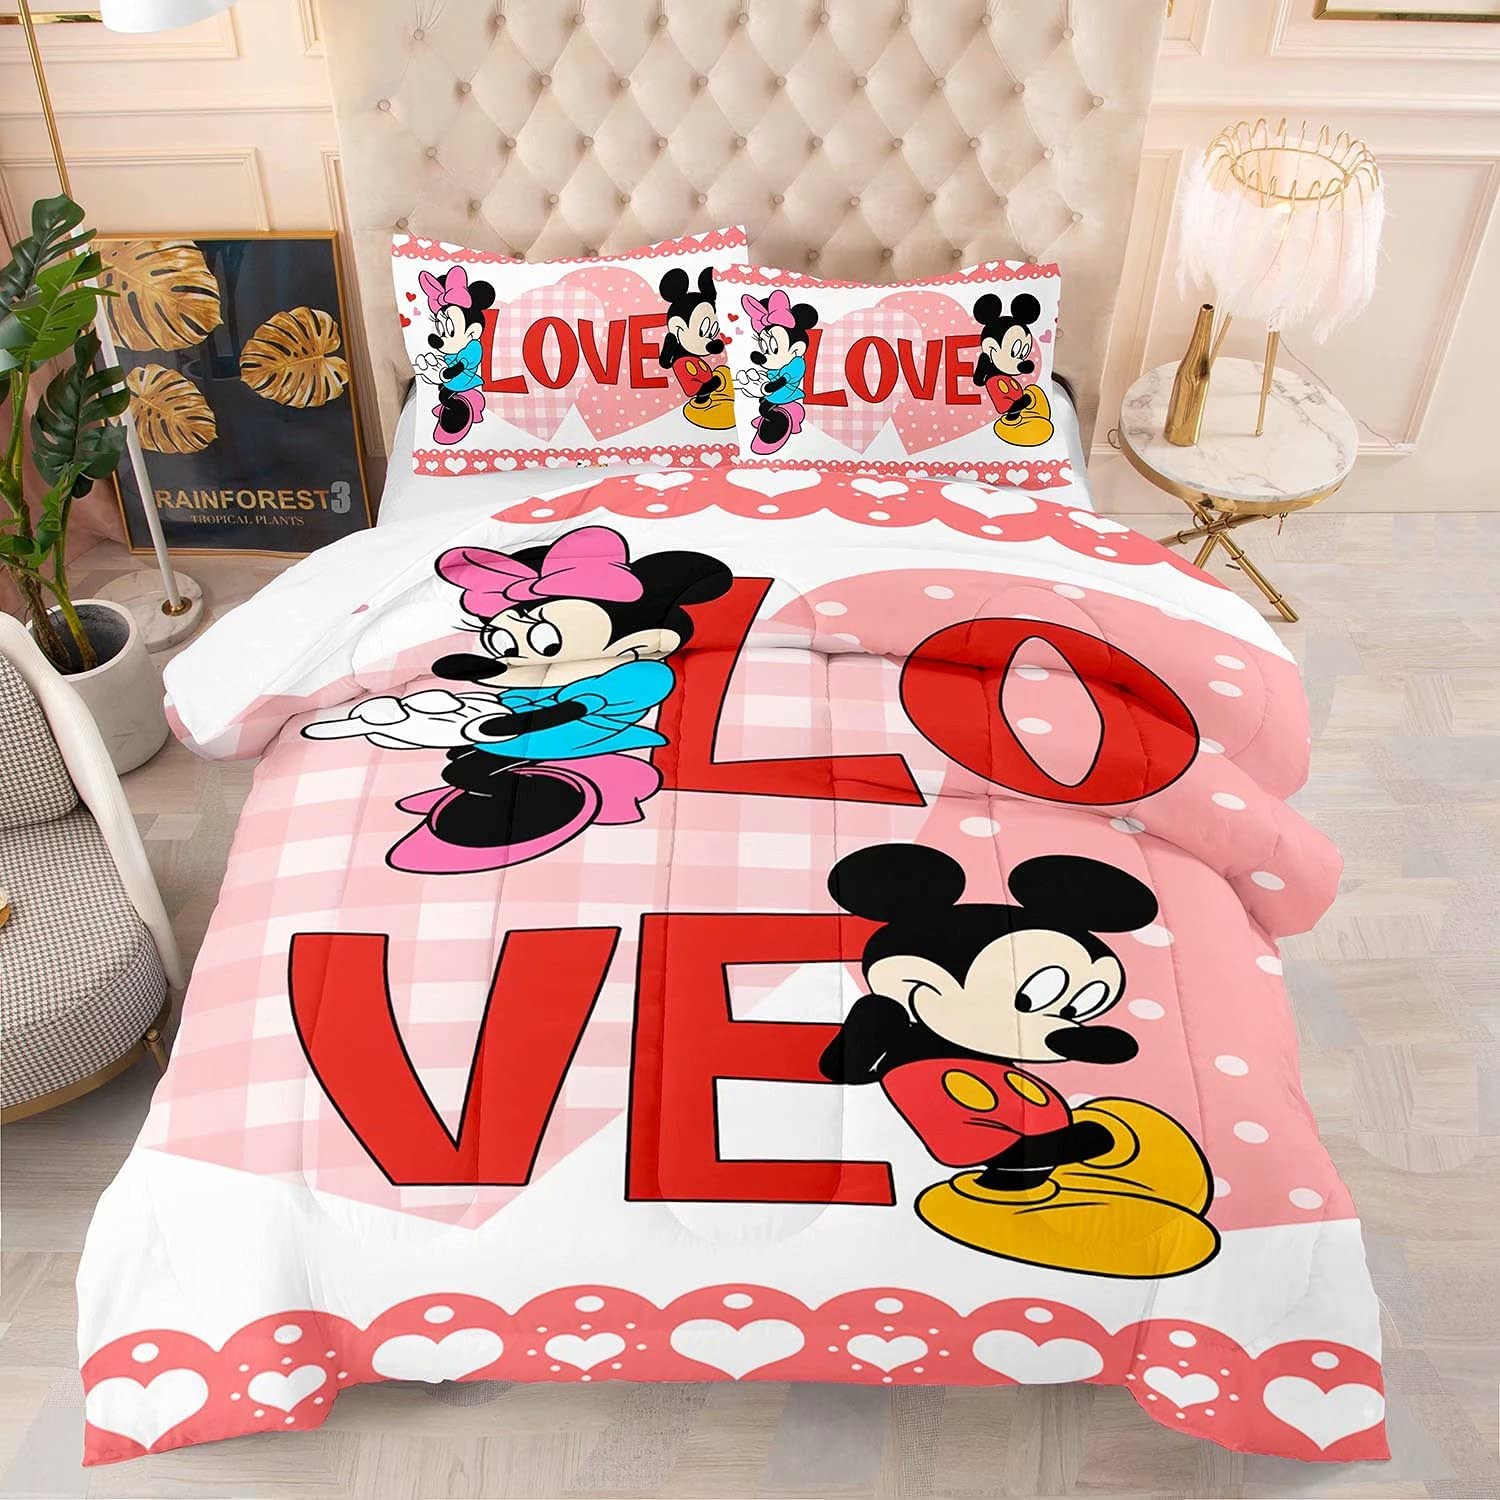 Mickey Mouse Bedding Set Minnie Manufacturer regenerated product Comforter Twin Size New Free Shipping